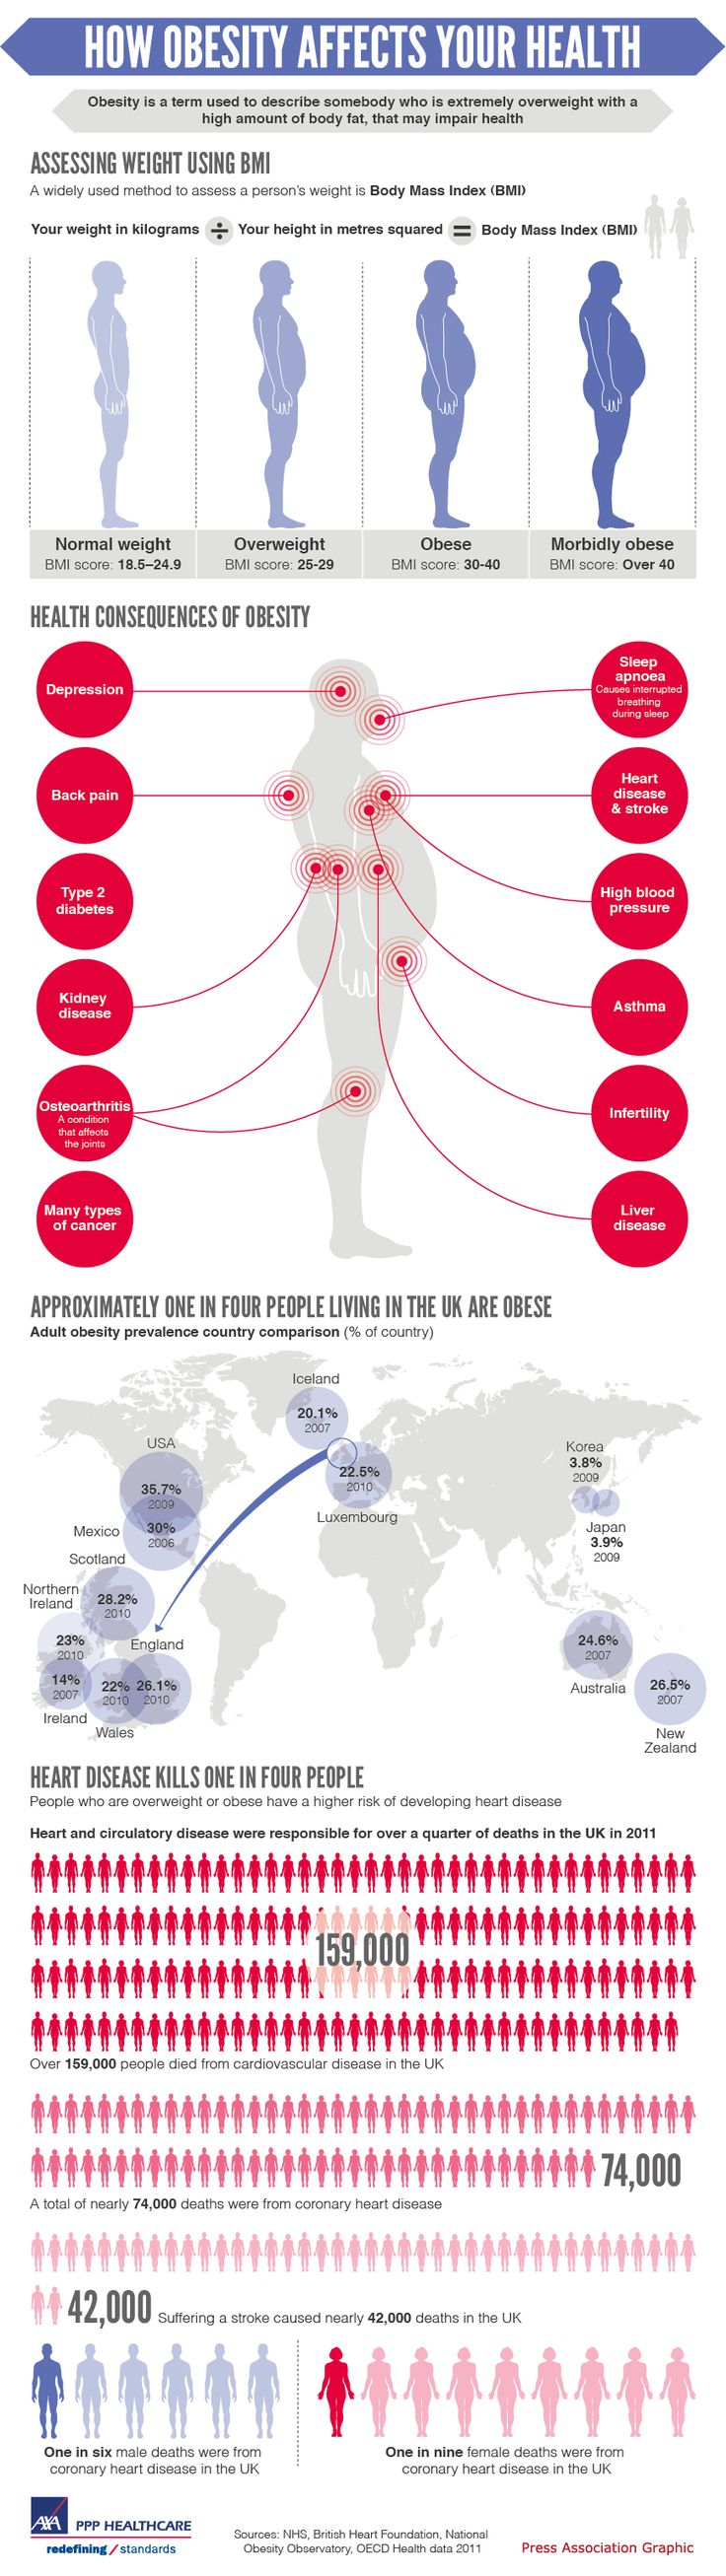 Infographic looking at the health risks of being obese, with a focus on the relationship of obesity and heart disease